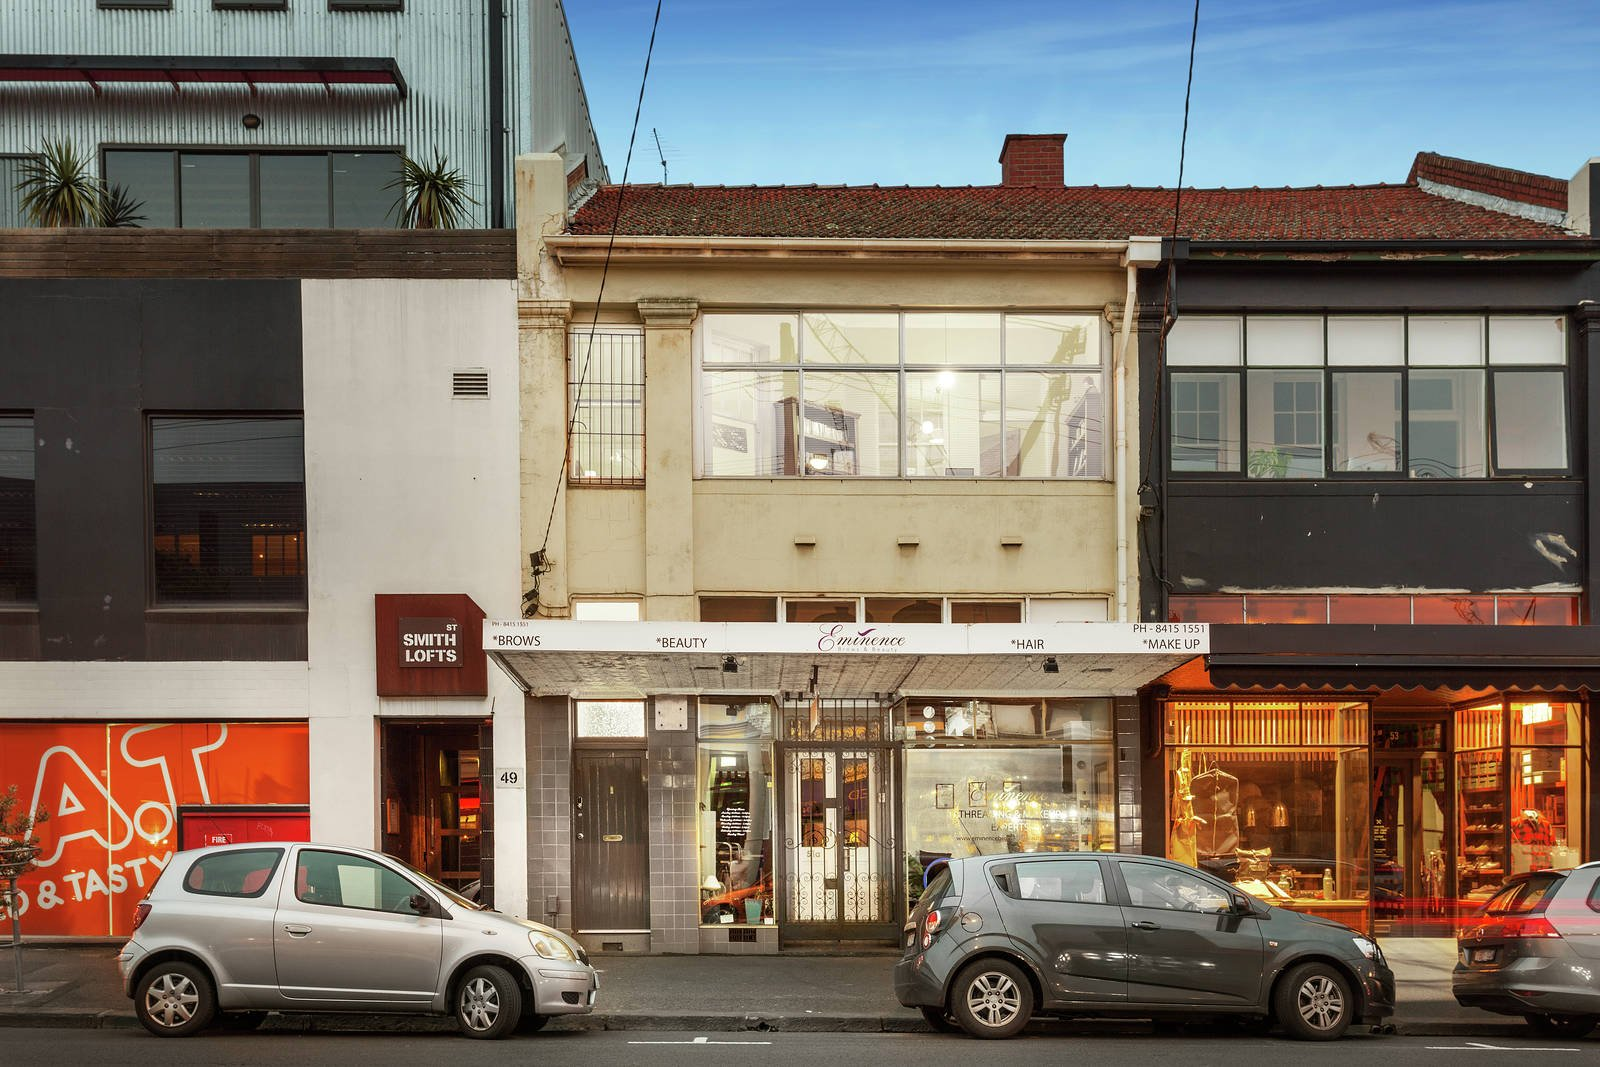 51 & 51A Smith Street, Fitzroy, VIC, 3065 image 1